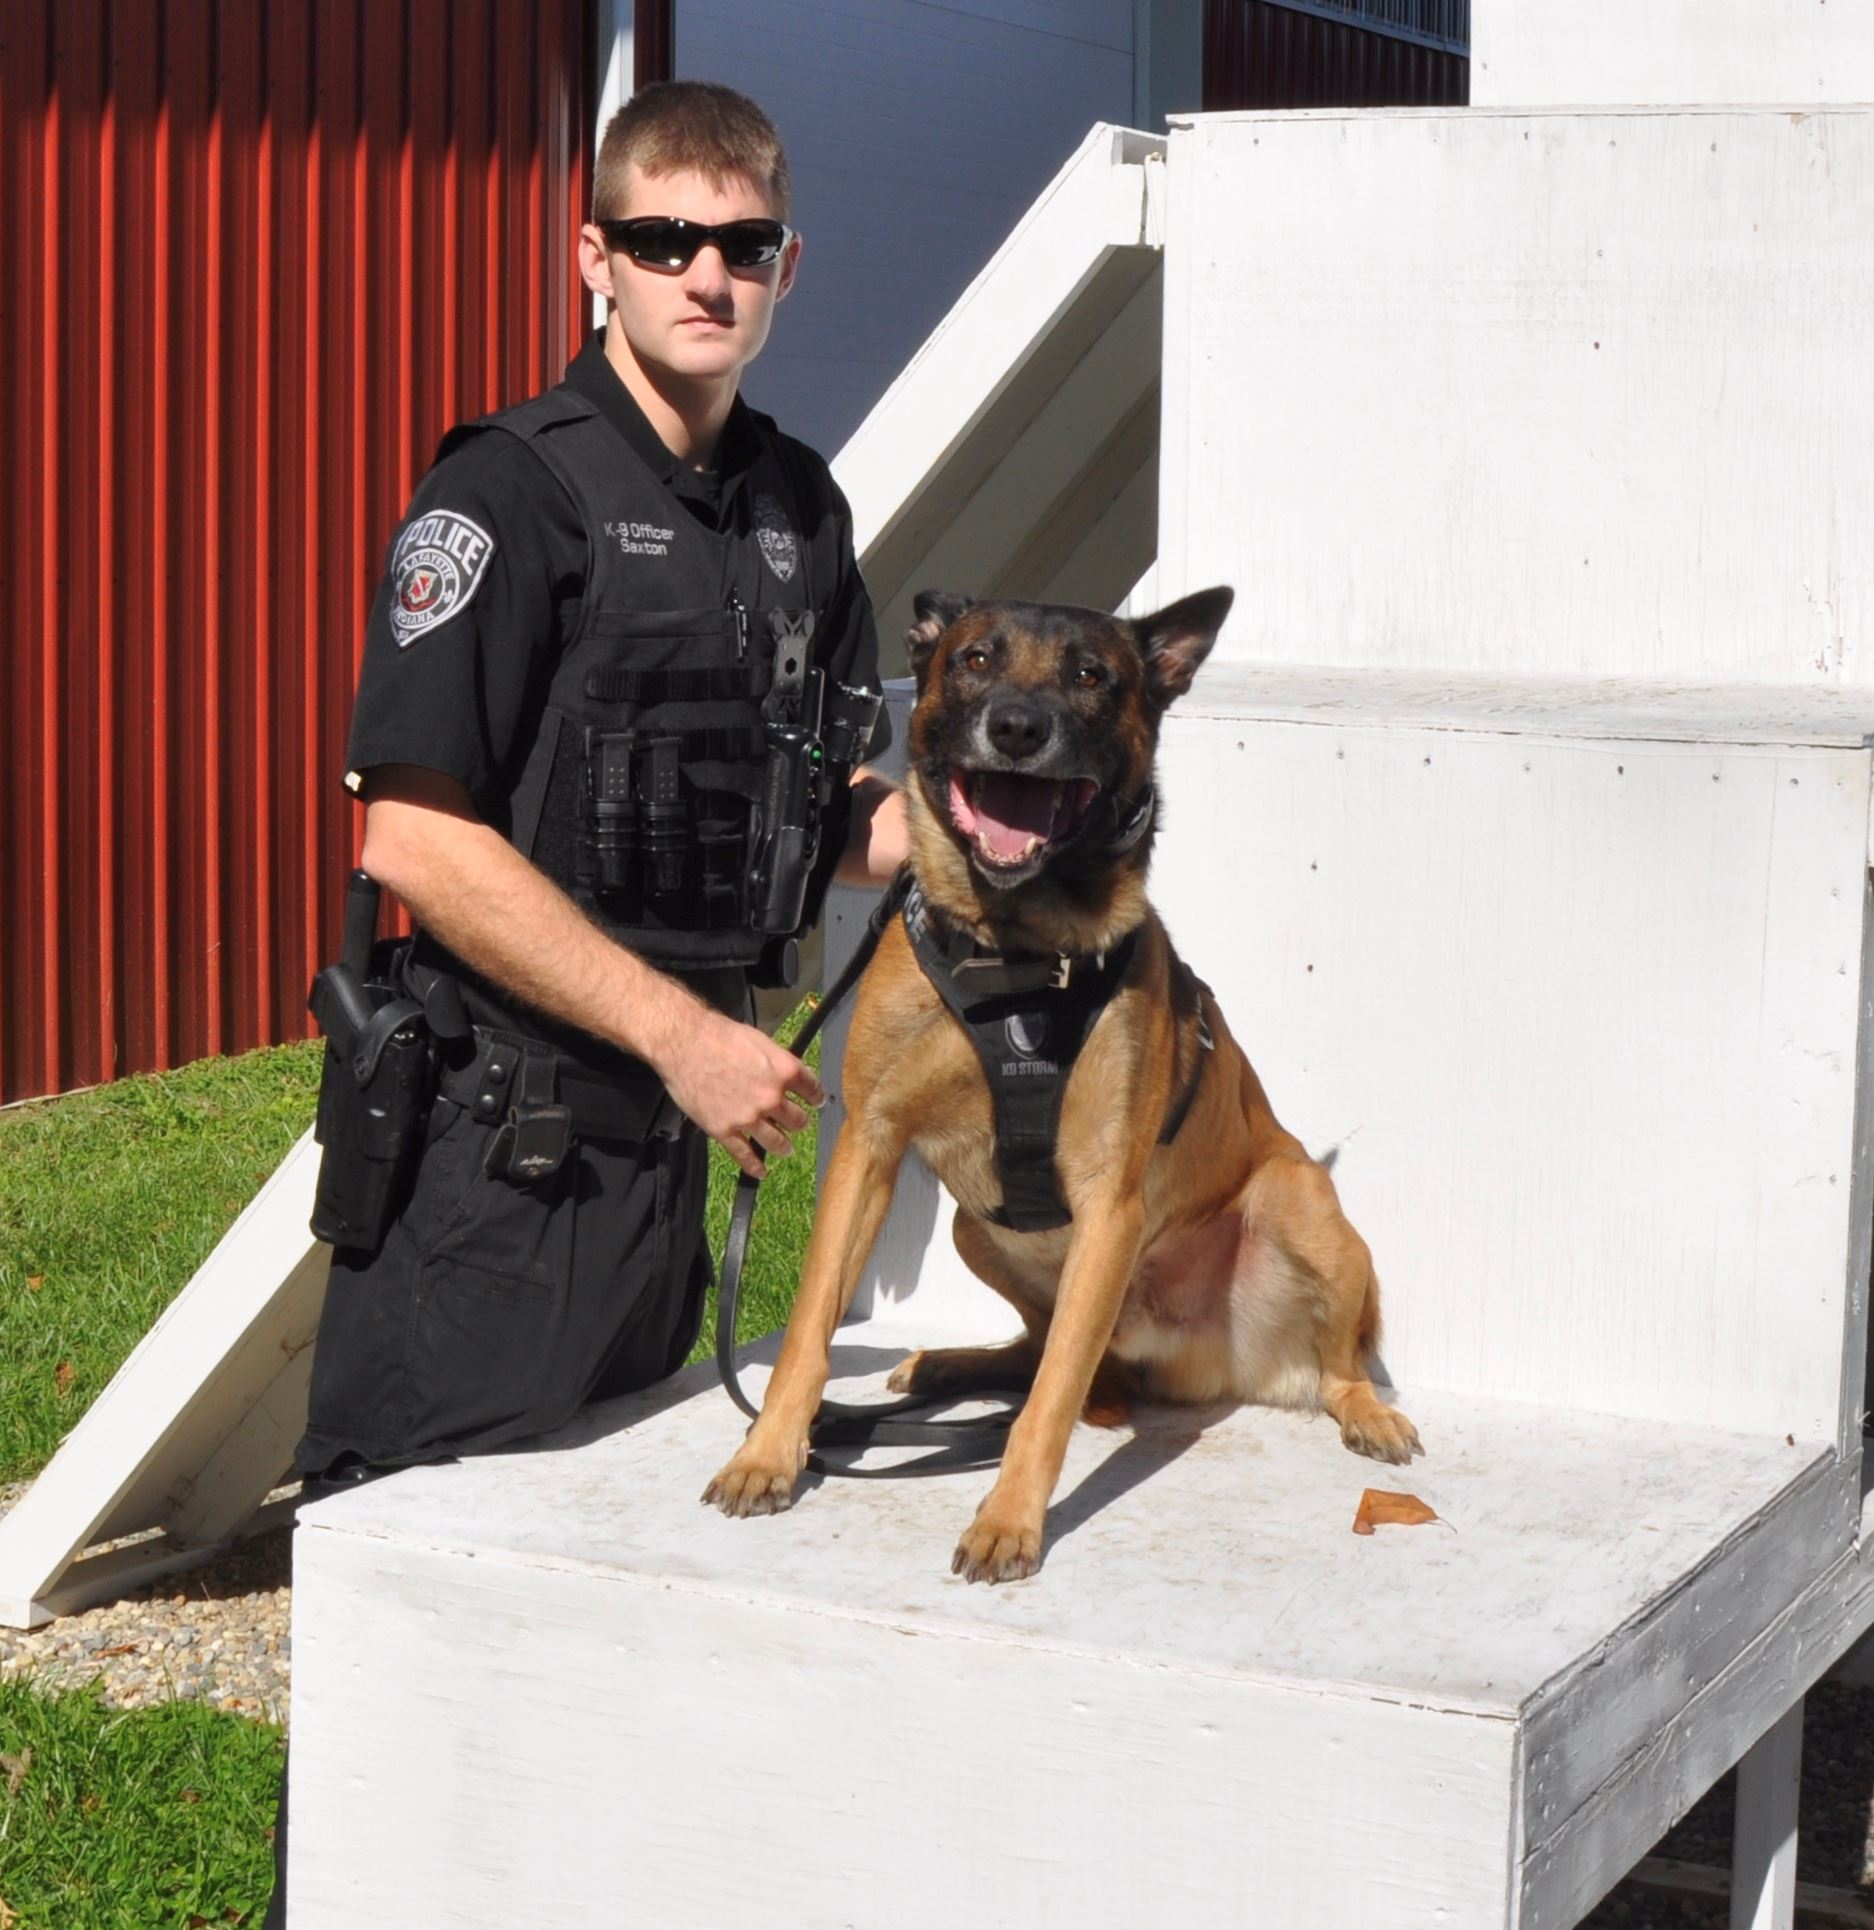 Officer Saxton and K9 Boyka 2017